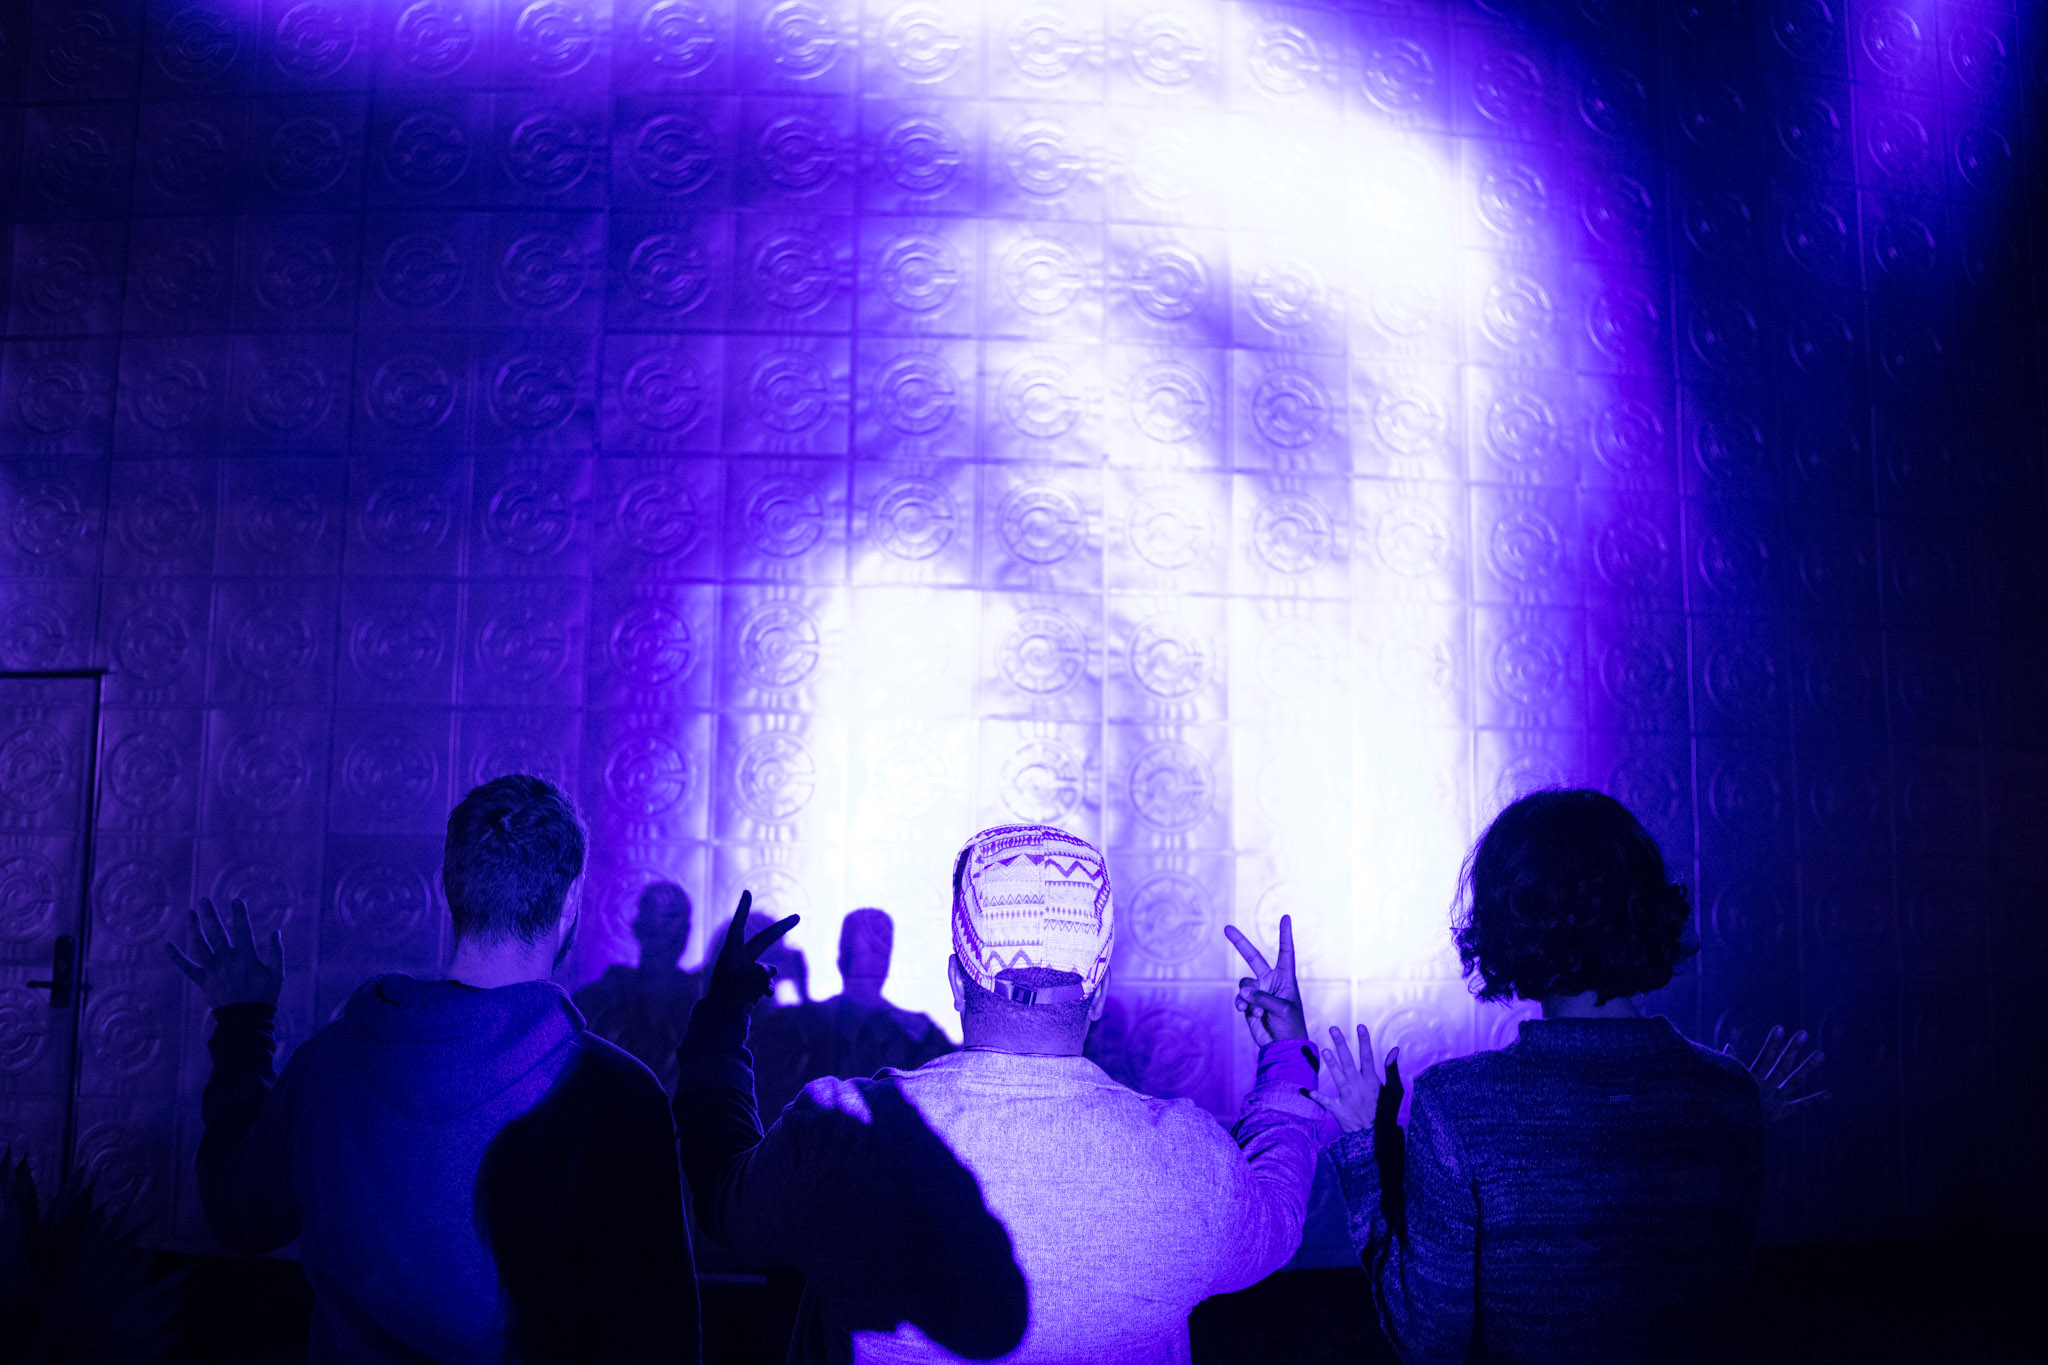 (From left) Chris Stokes, Olivia Youngblood, and Stephanie Marquez make shadow puppets in front of a light display at Luminaria.